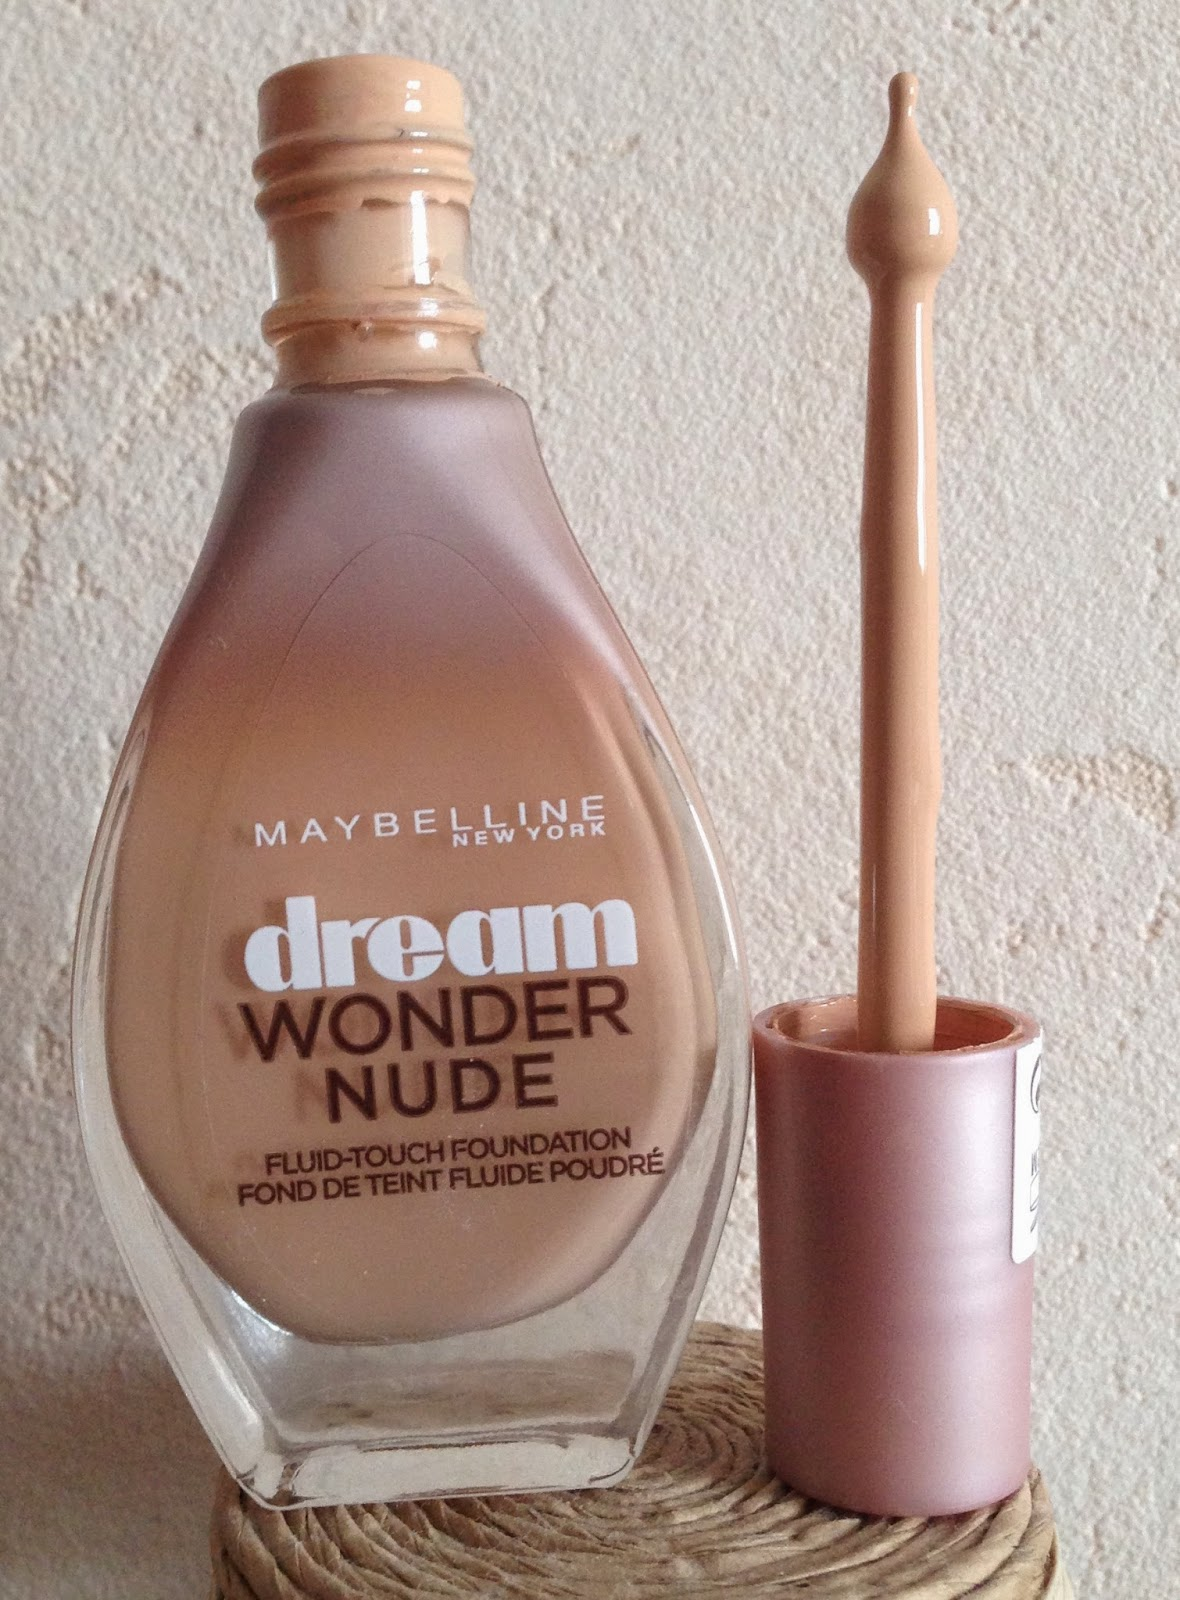 Flacon et applicateur du fond de teint drean wonder nude de chez Maybelline